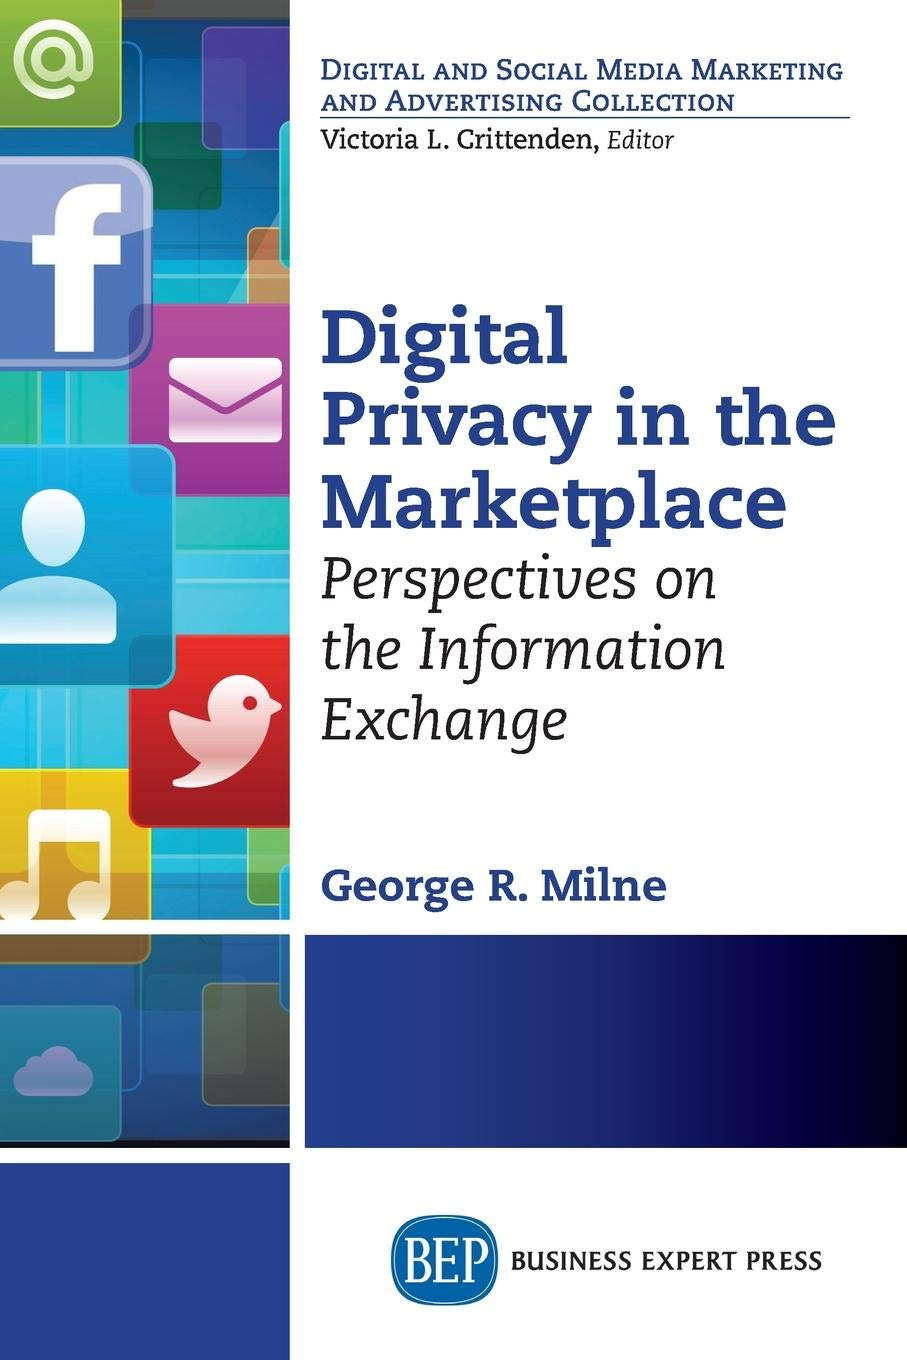 Digital privacy in the marketplace : perspectives on the information exchange